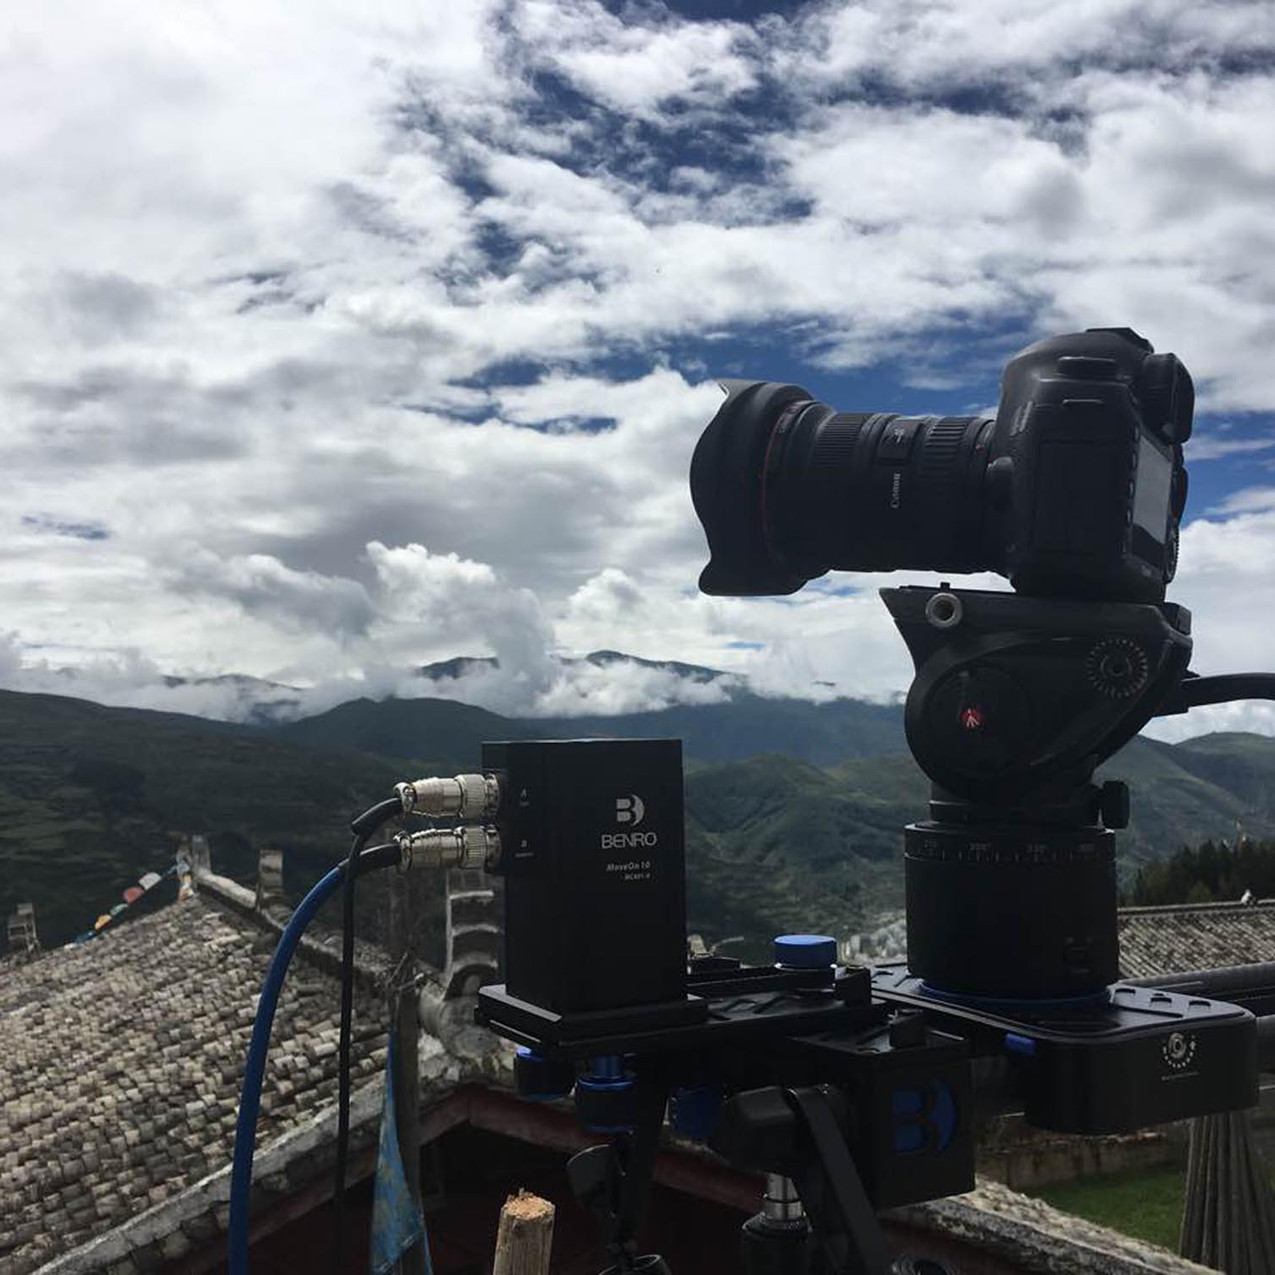 Shooting timelapses with the Canon 5D Mark III on our motorized 90cm Benro slider.